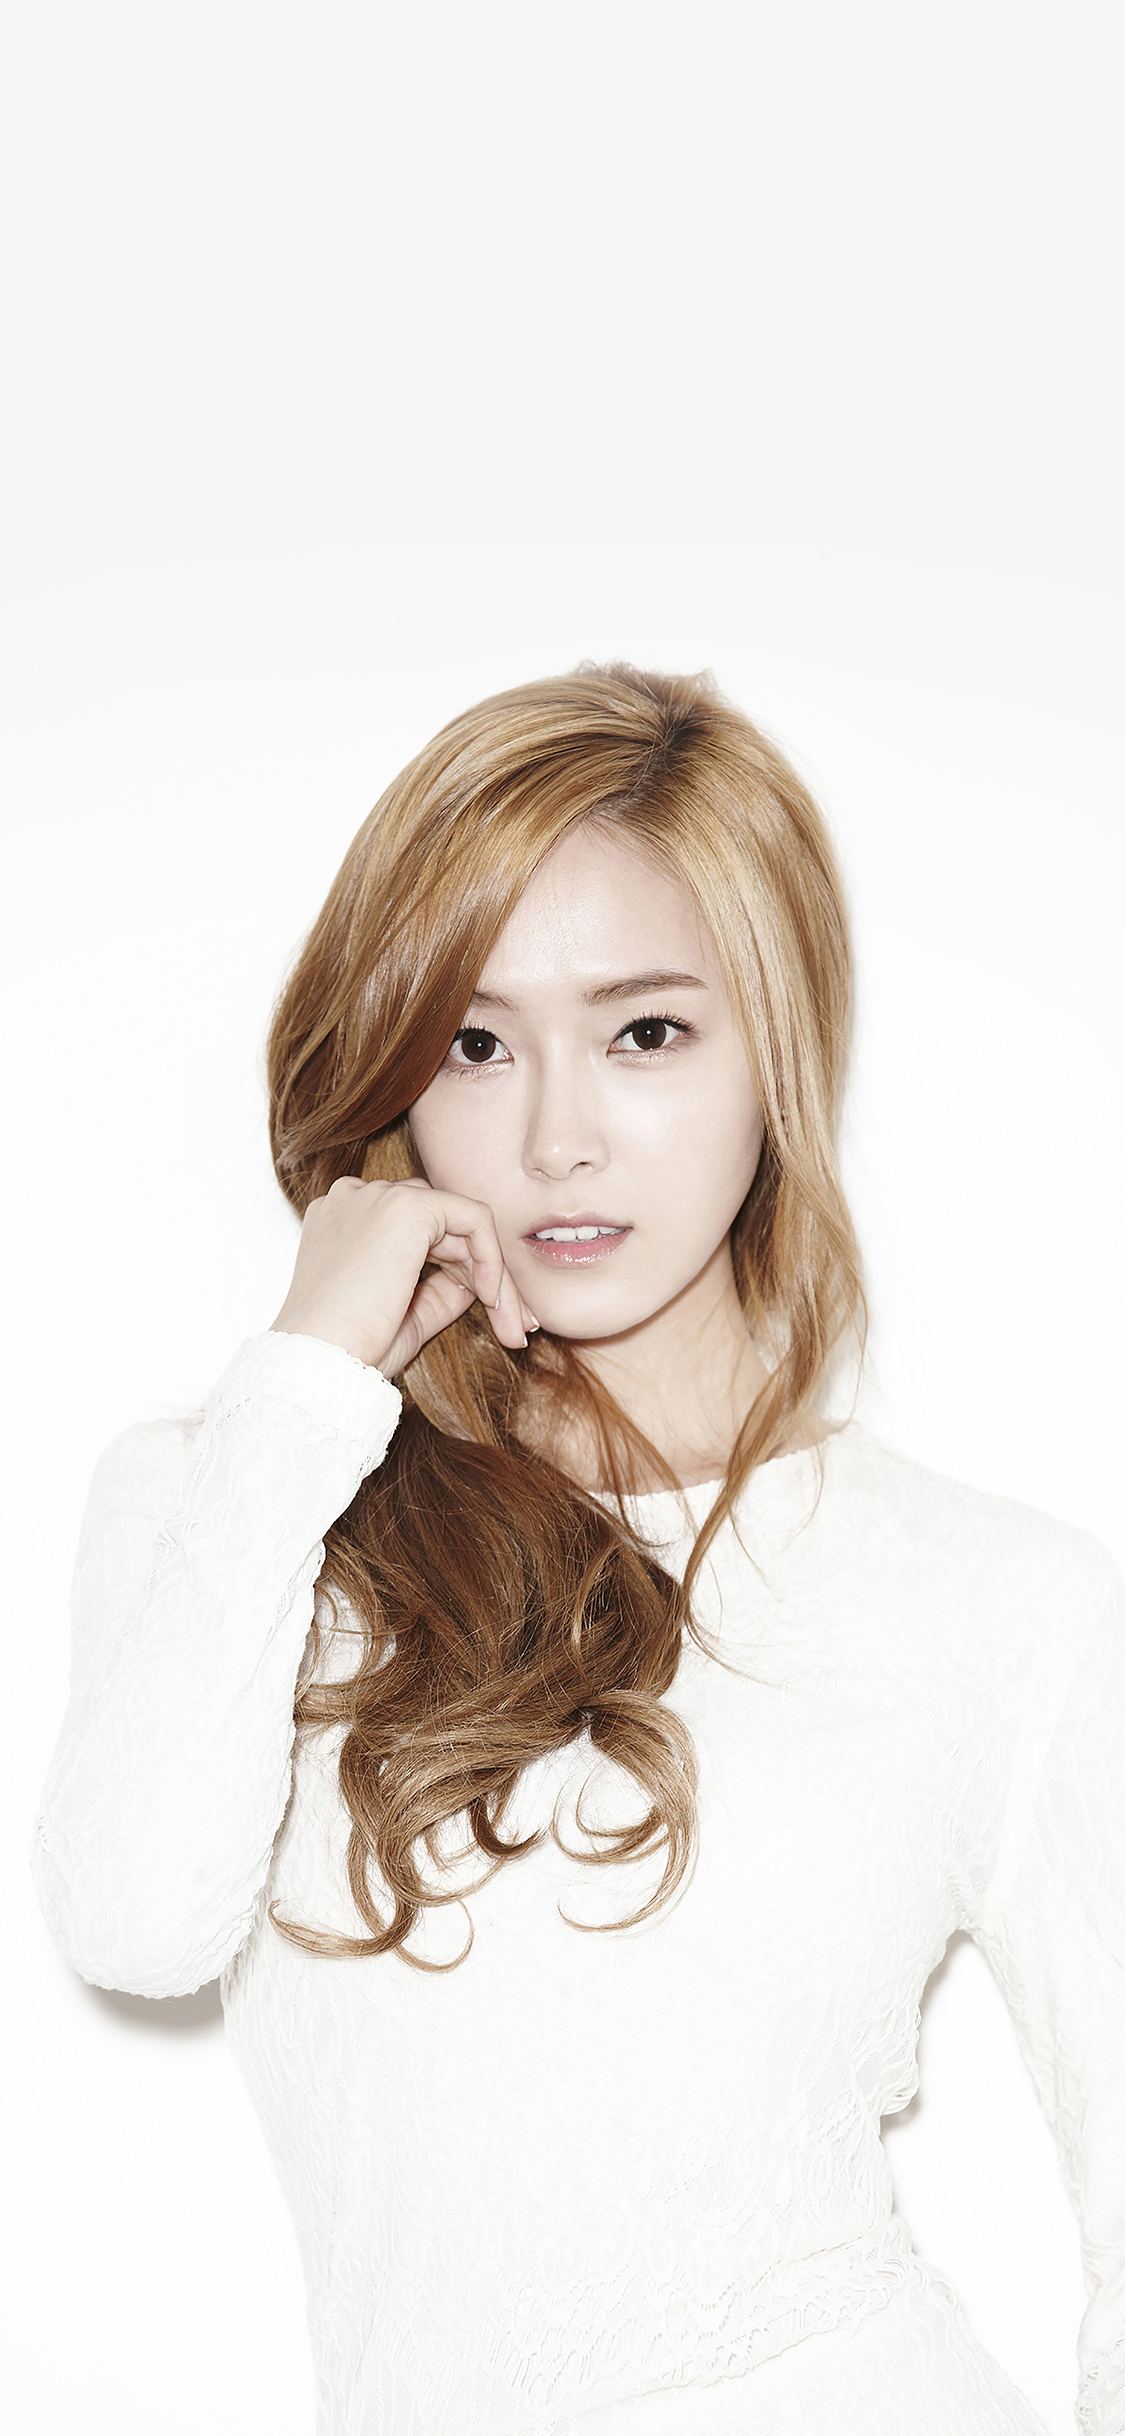 iPhoneXpapers.com-Apple-iPhone-wallpaper-ha73-wallpaper-jessica-snsd-kpop